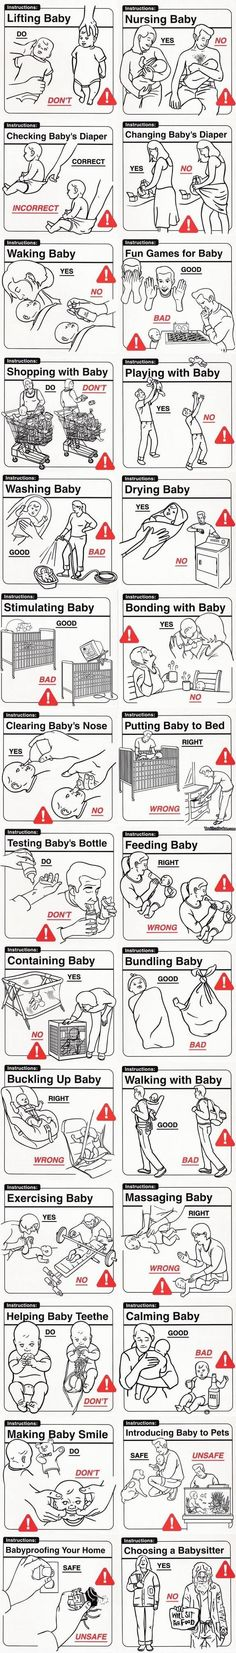 Baby Instructions 101